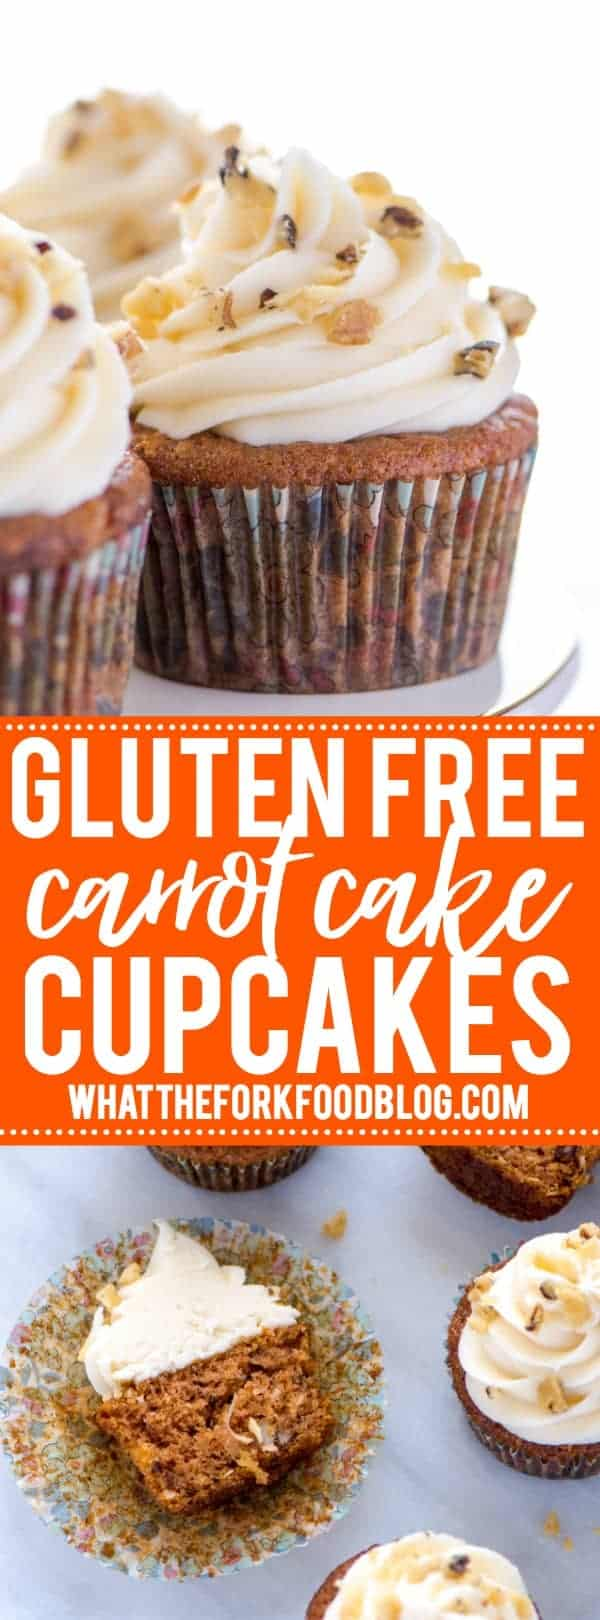 Gluten Free Carrot Cake Cupcakes Pinterest collage